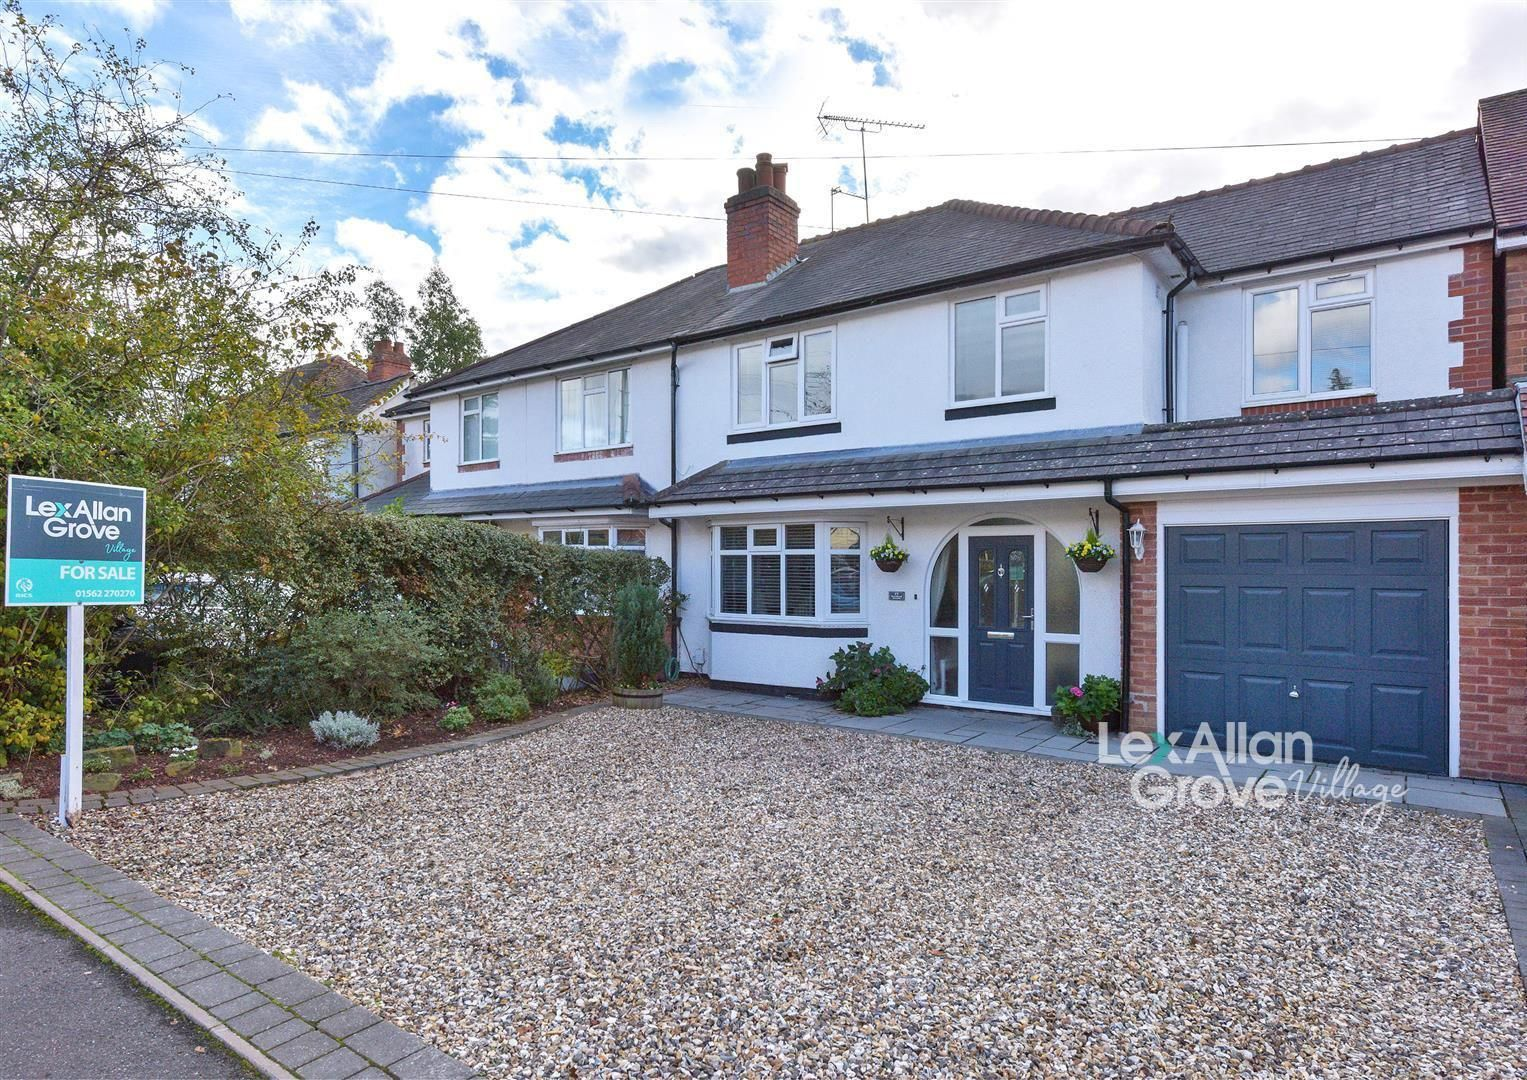 5 bed semi-detached for sale in Hagley, DY8